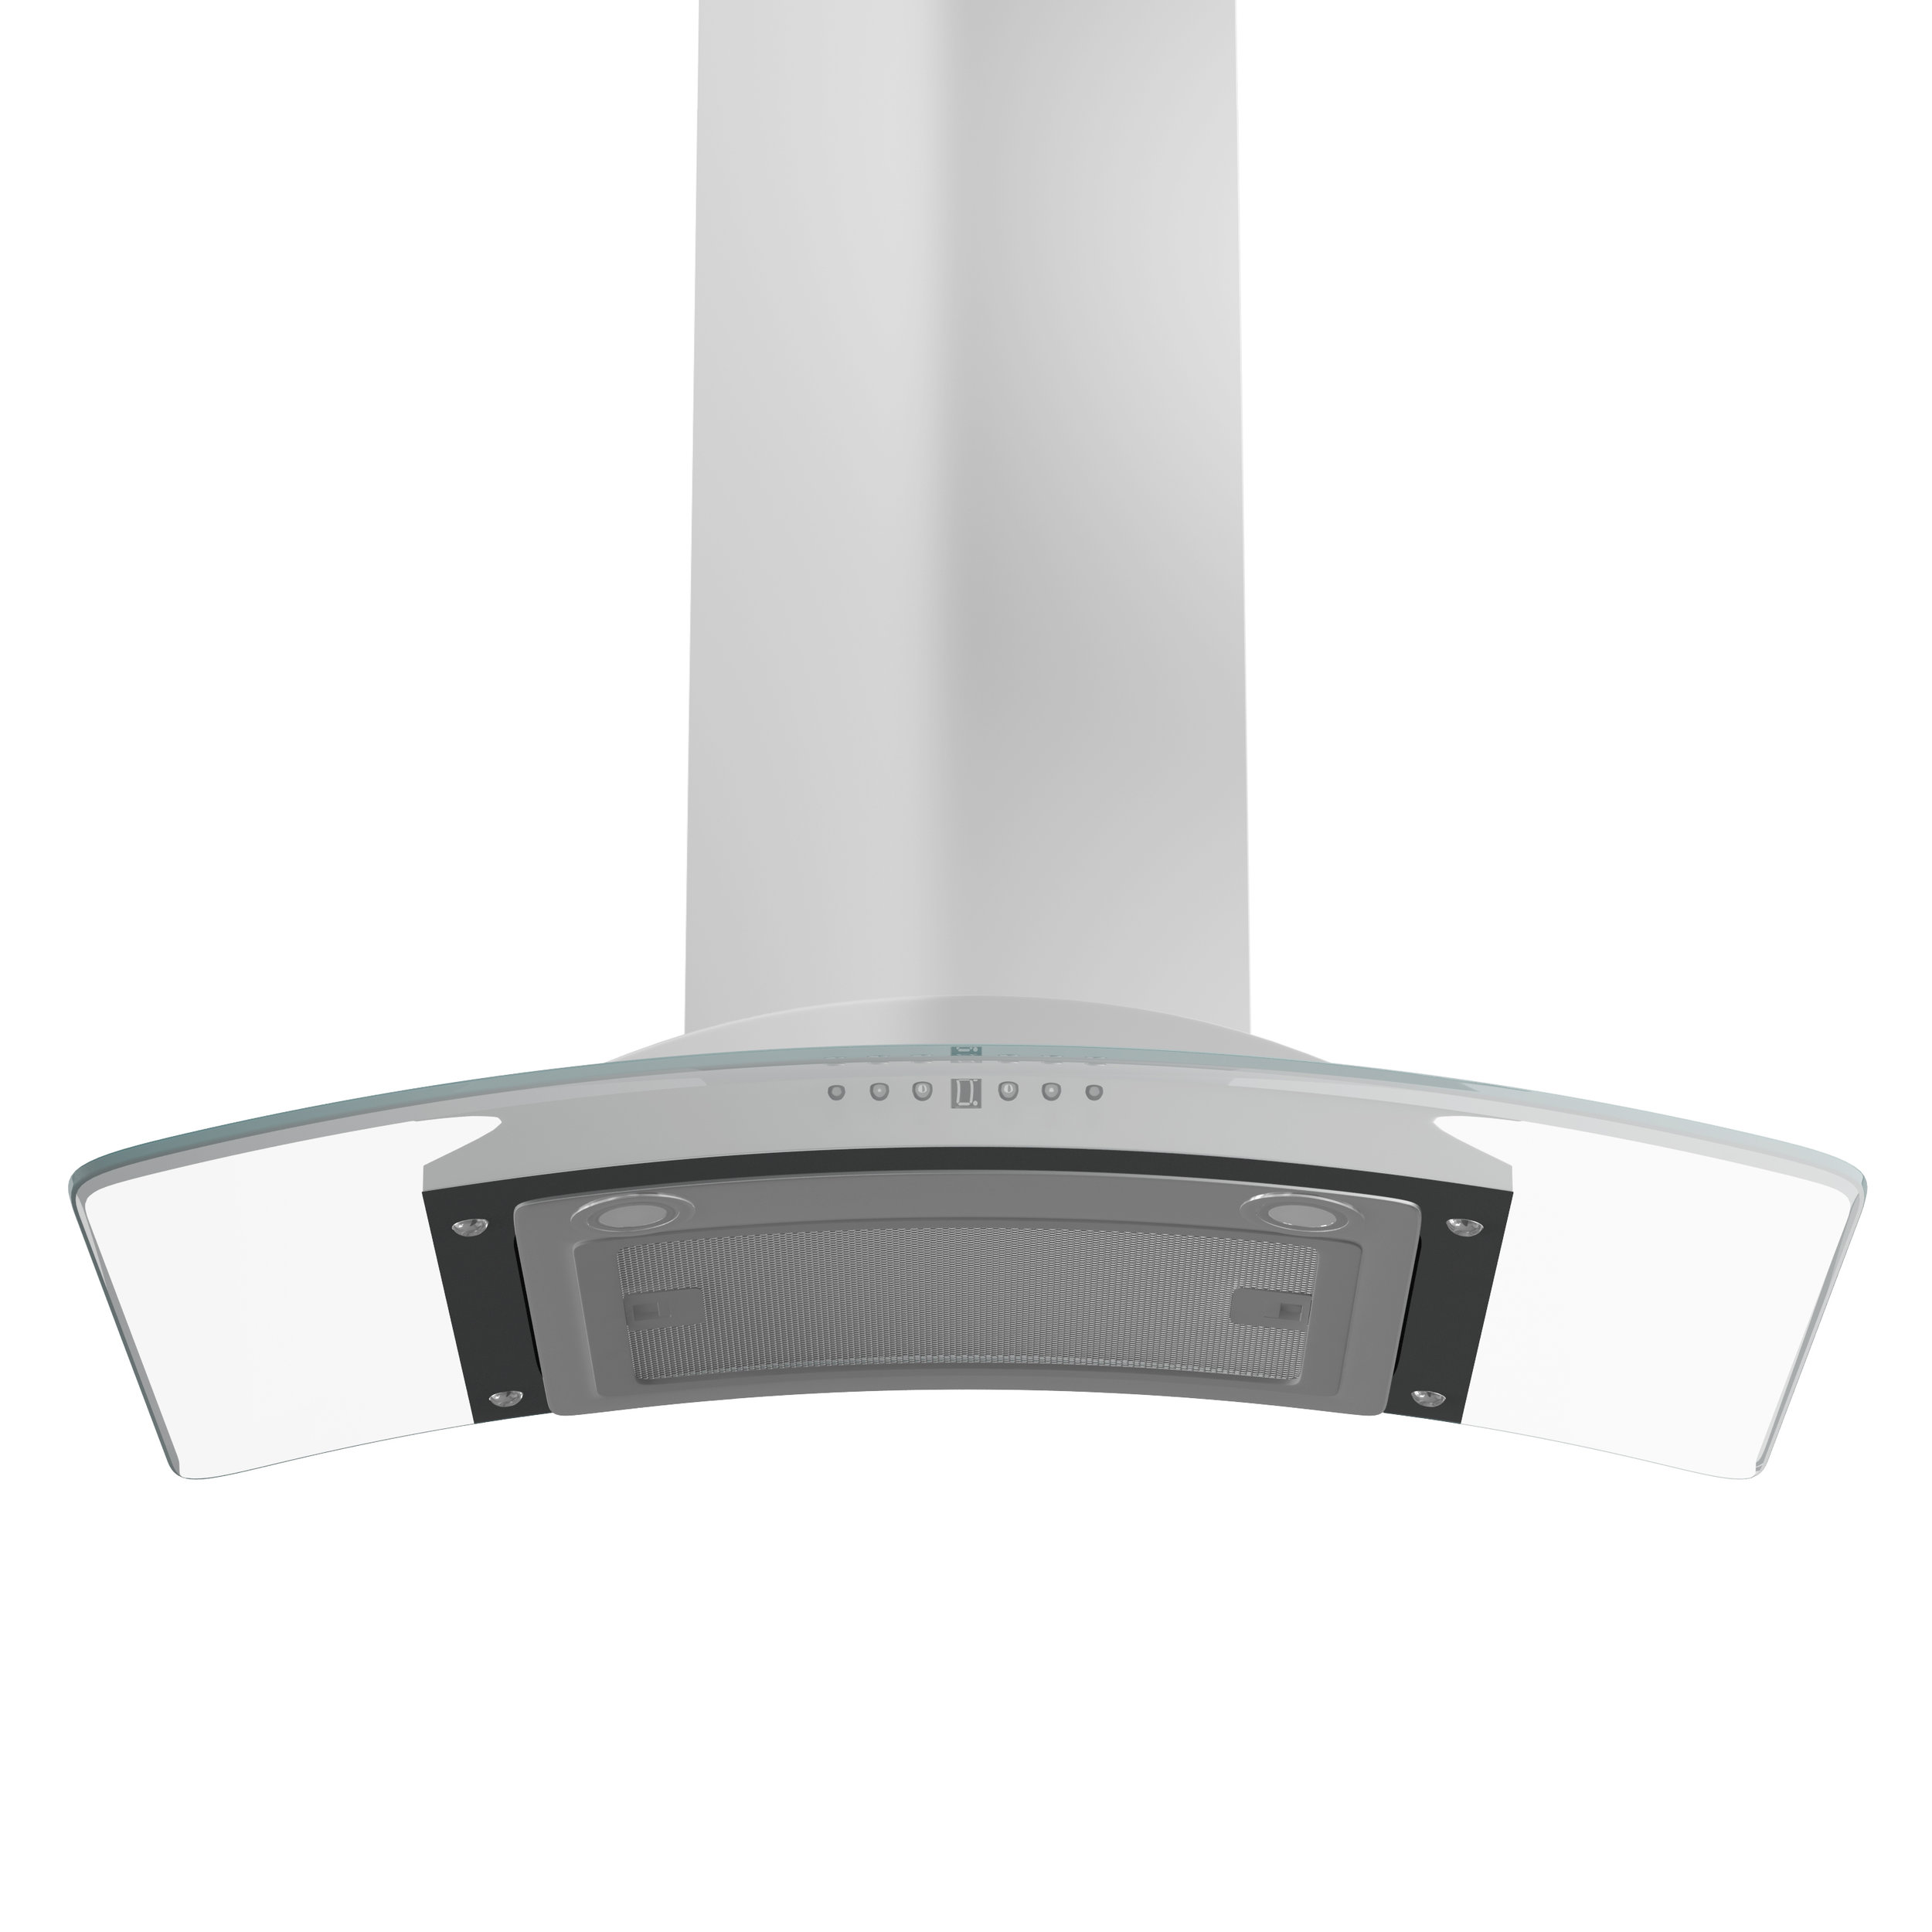 zline-stainless-steel-wall-mounted-range-hood-KN-underneath.jpg